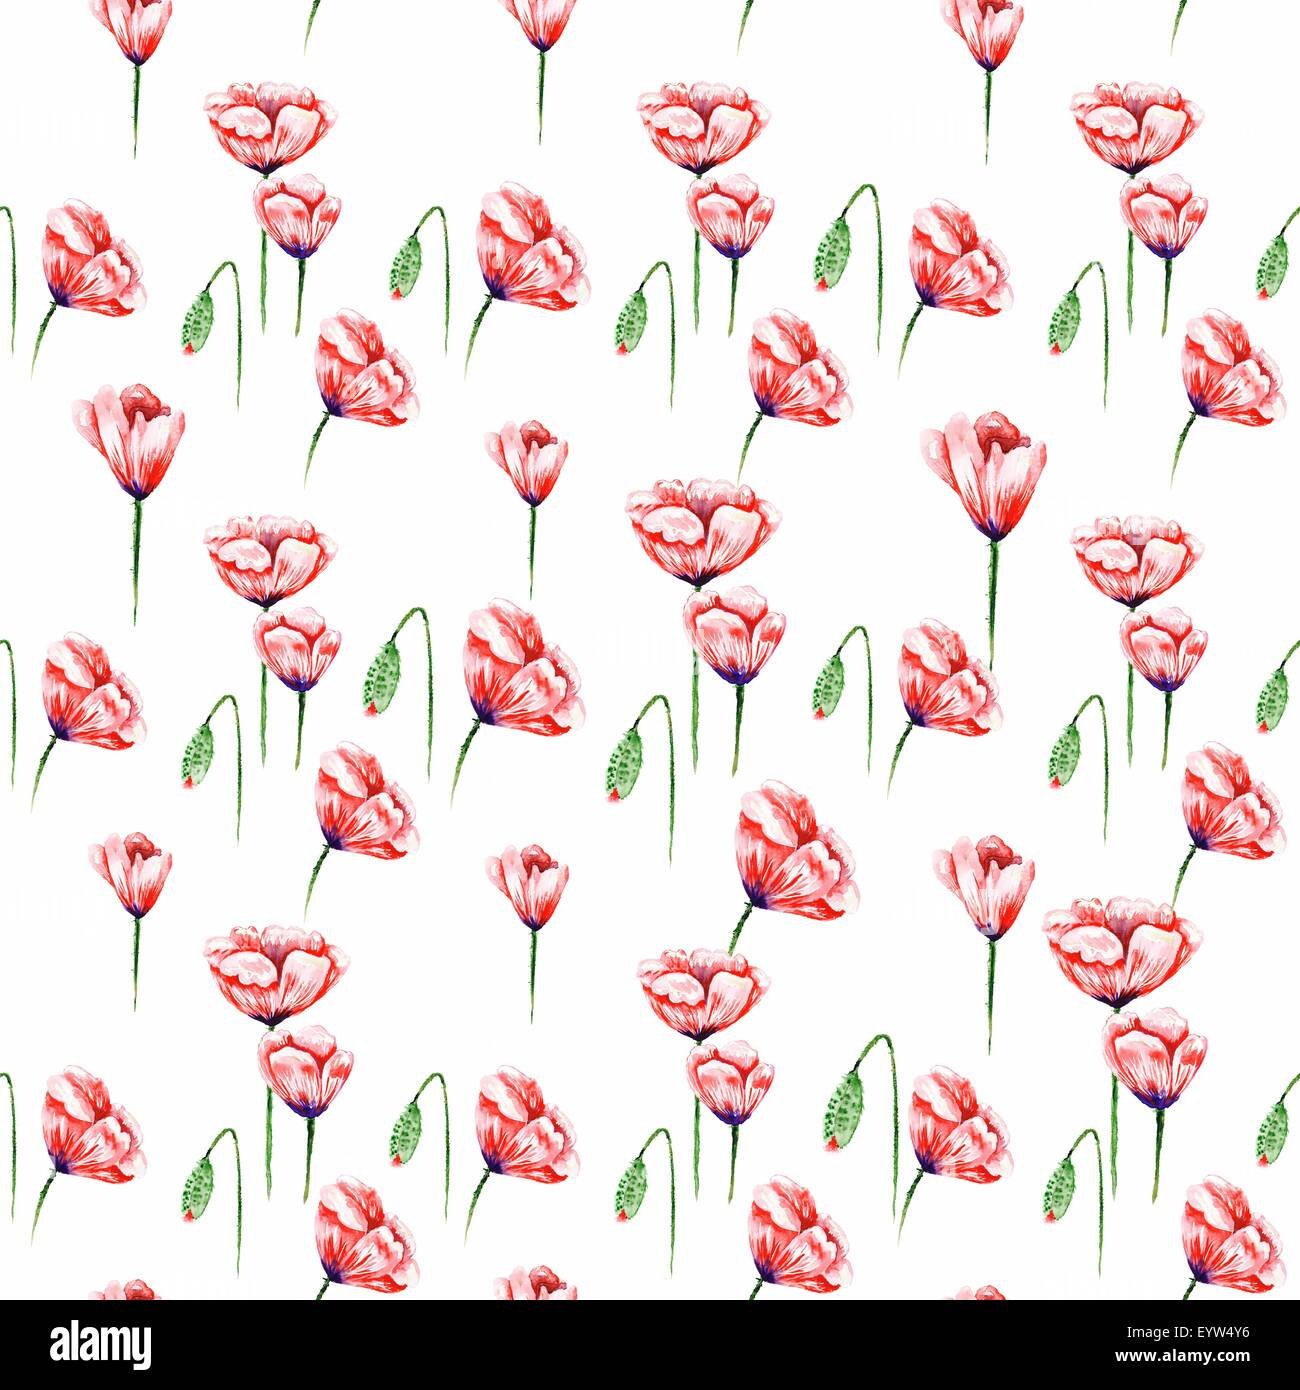 Seamless watercolor texture with red flowers isolated on